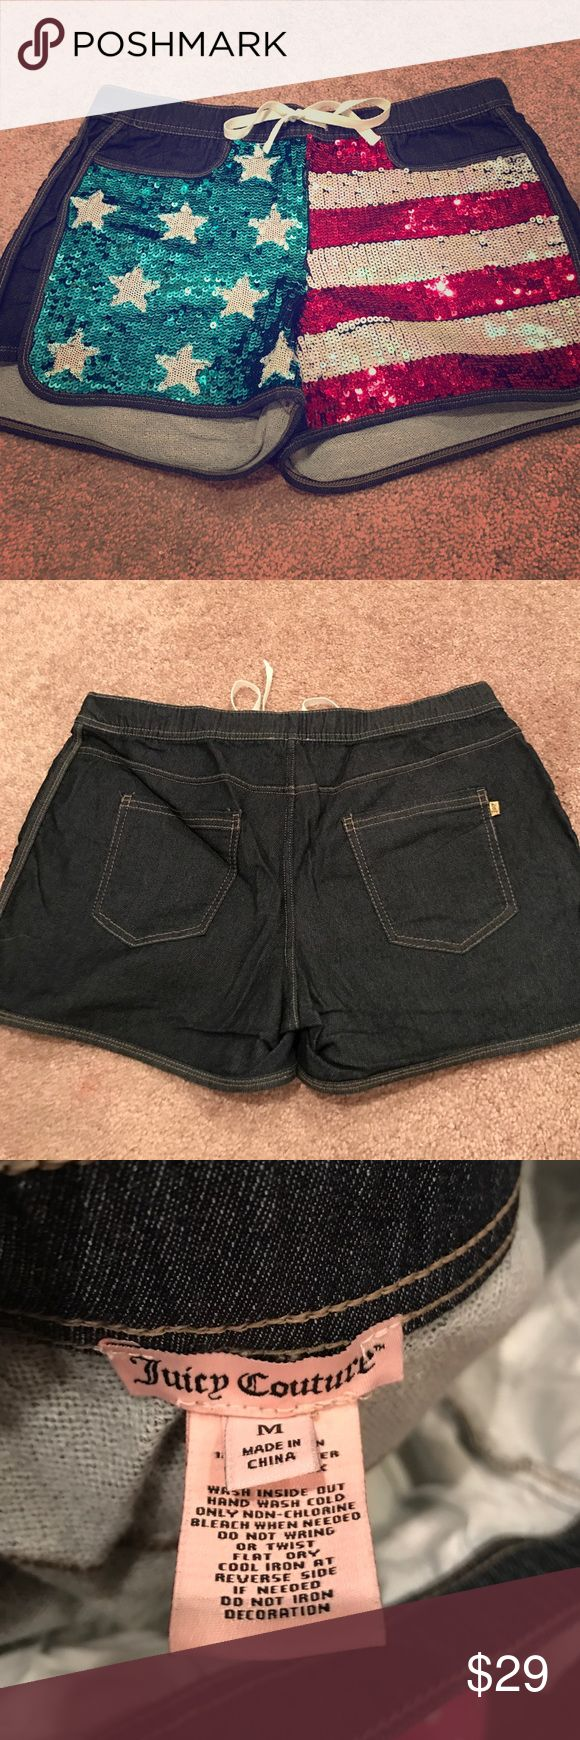 Juicy couture American shorts Super cute and perfect for July 4th! Only worn one time perfect condition Juicy Couture Shorts